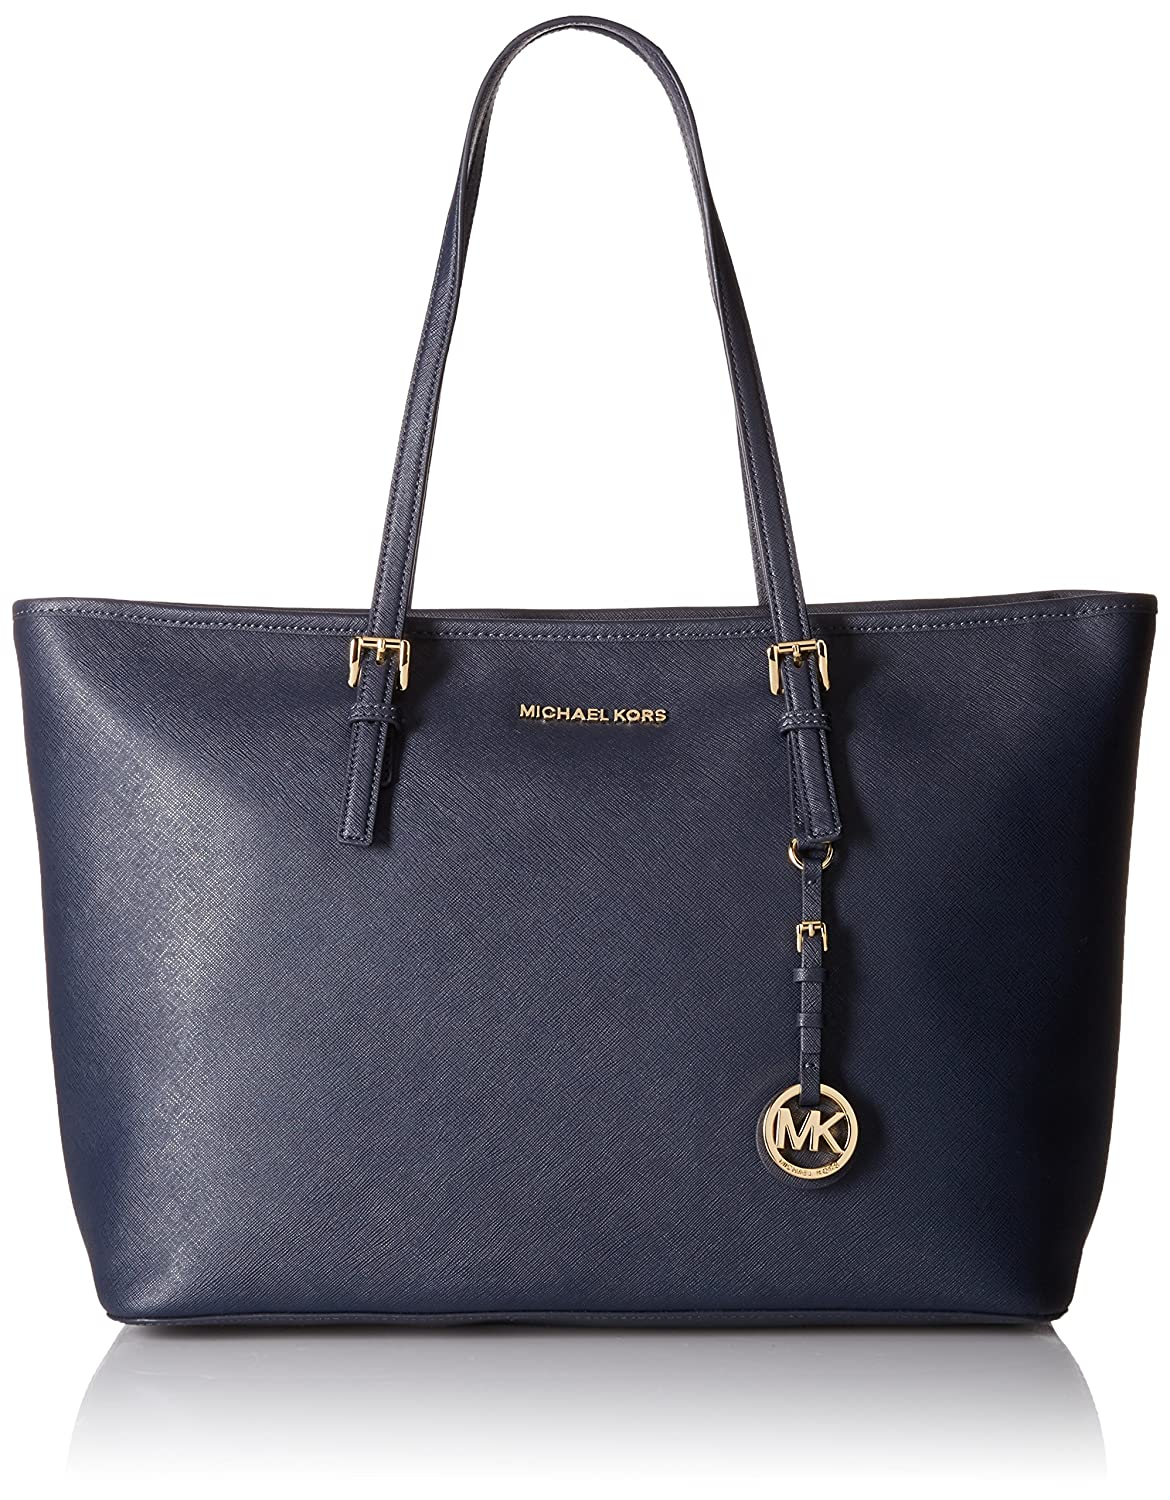 Michael Kors Medium Travel Tote. Love the colour | Michael